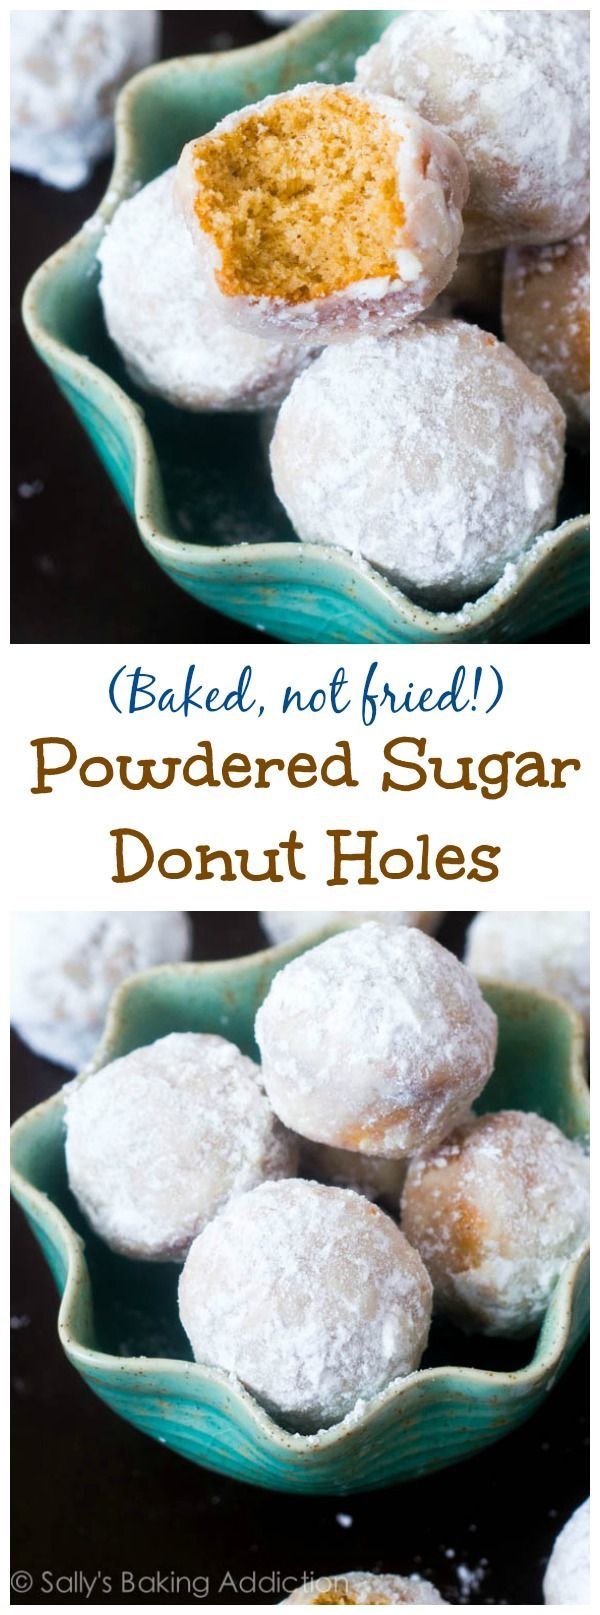 Everyone will LOVE these Baked Powdered Sugar Donut Holes. Baked in a mini-muffin pan. Not fried!